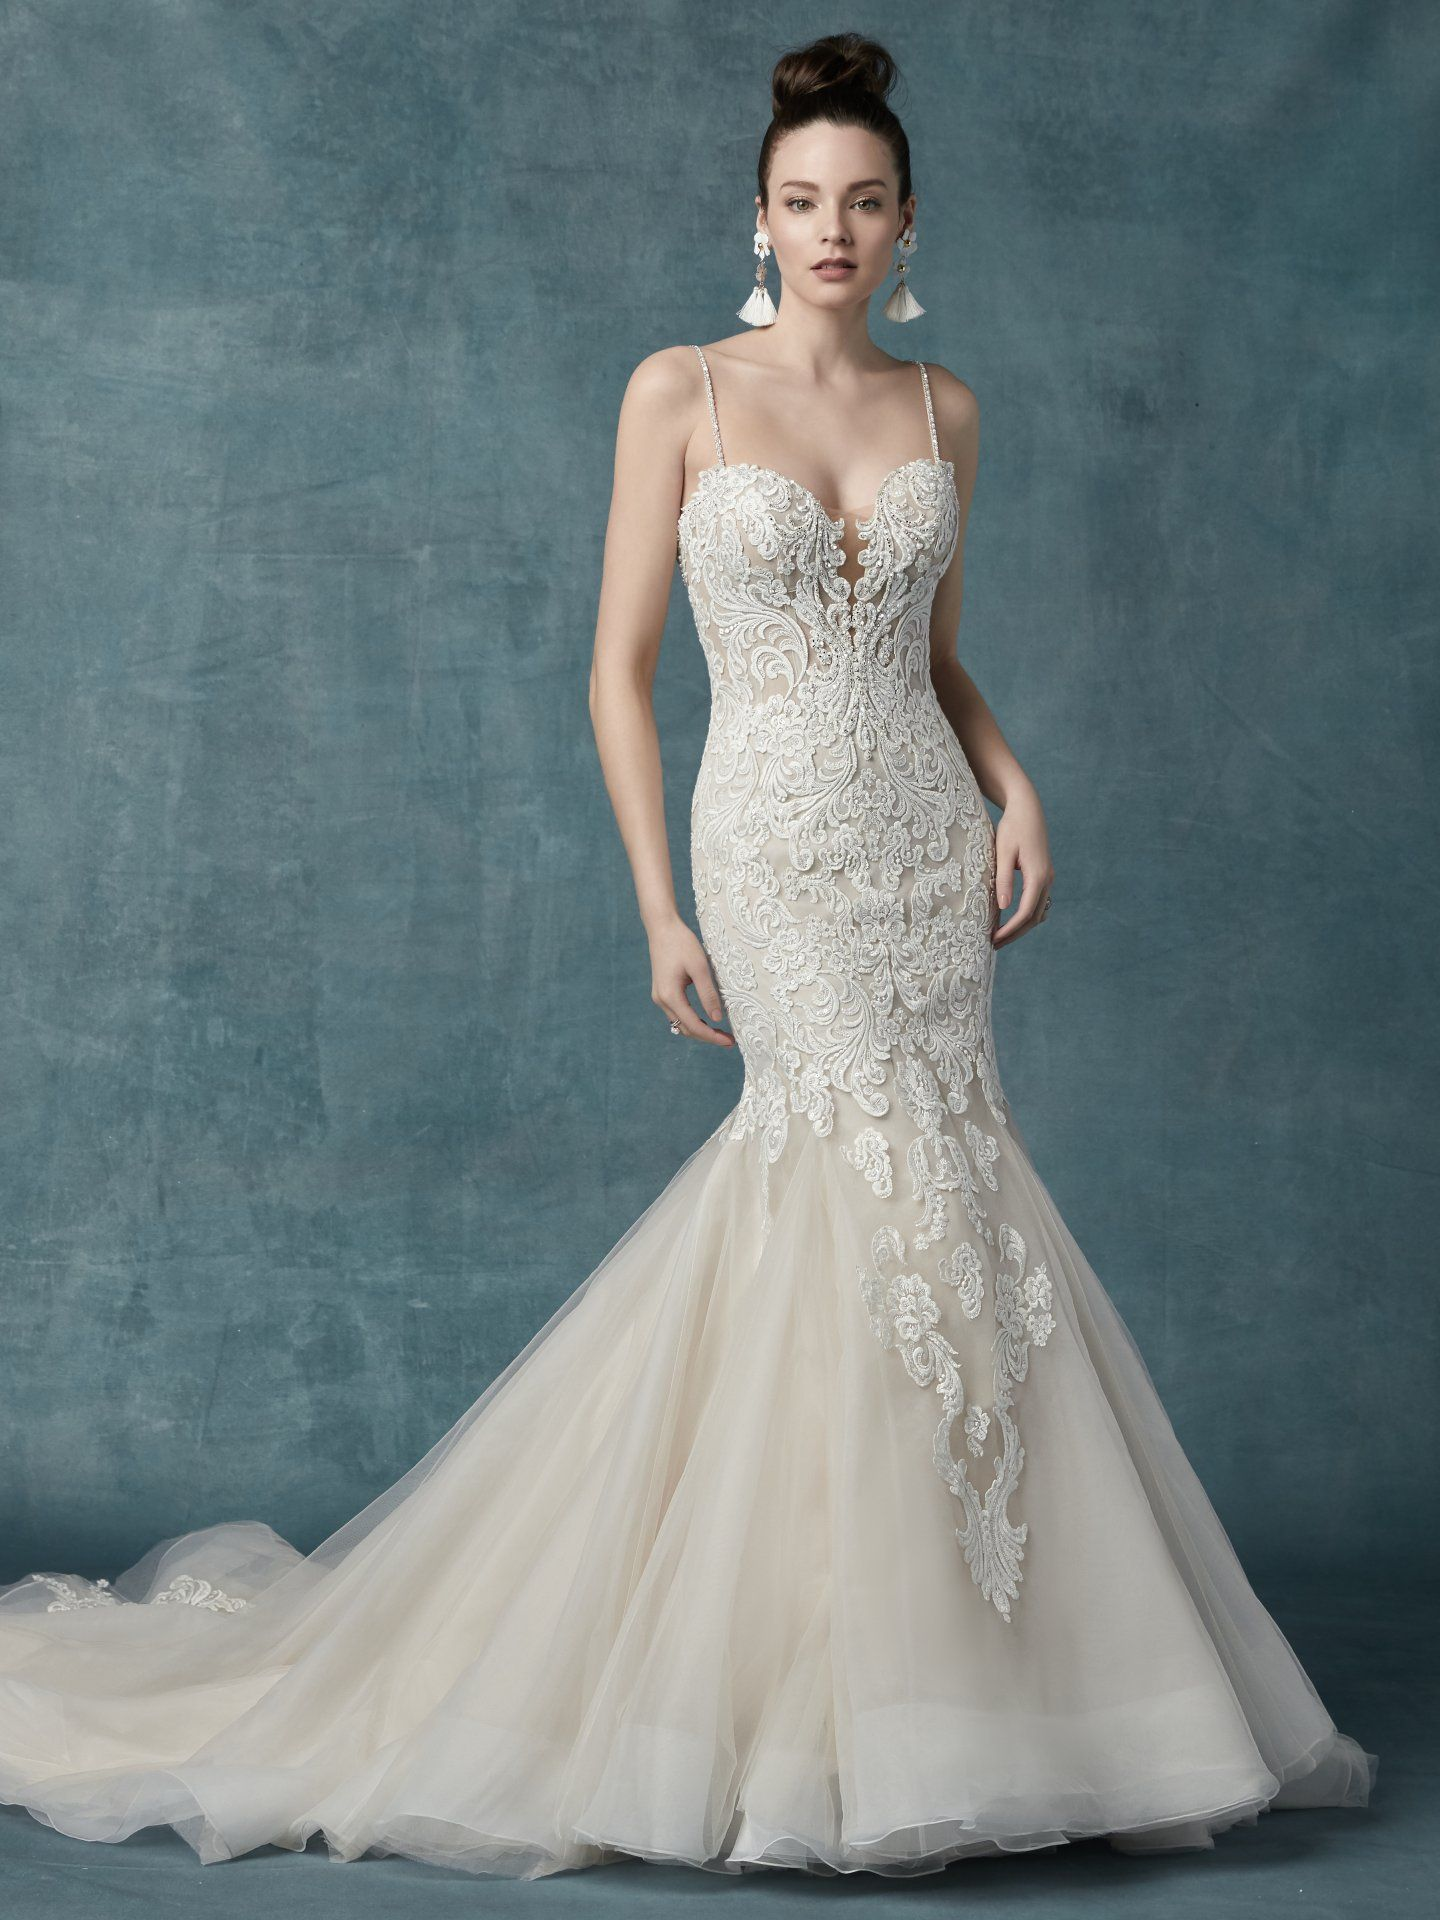 21228b14d Alistaire Wedding Dress Bridal Gown | Maggie Sottero This glamorous  fit-and-flare wedding gown features a bodice of lace motifs and sheer  detailing, ...